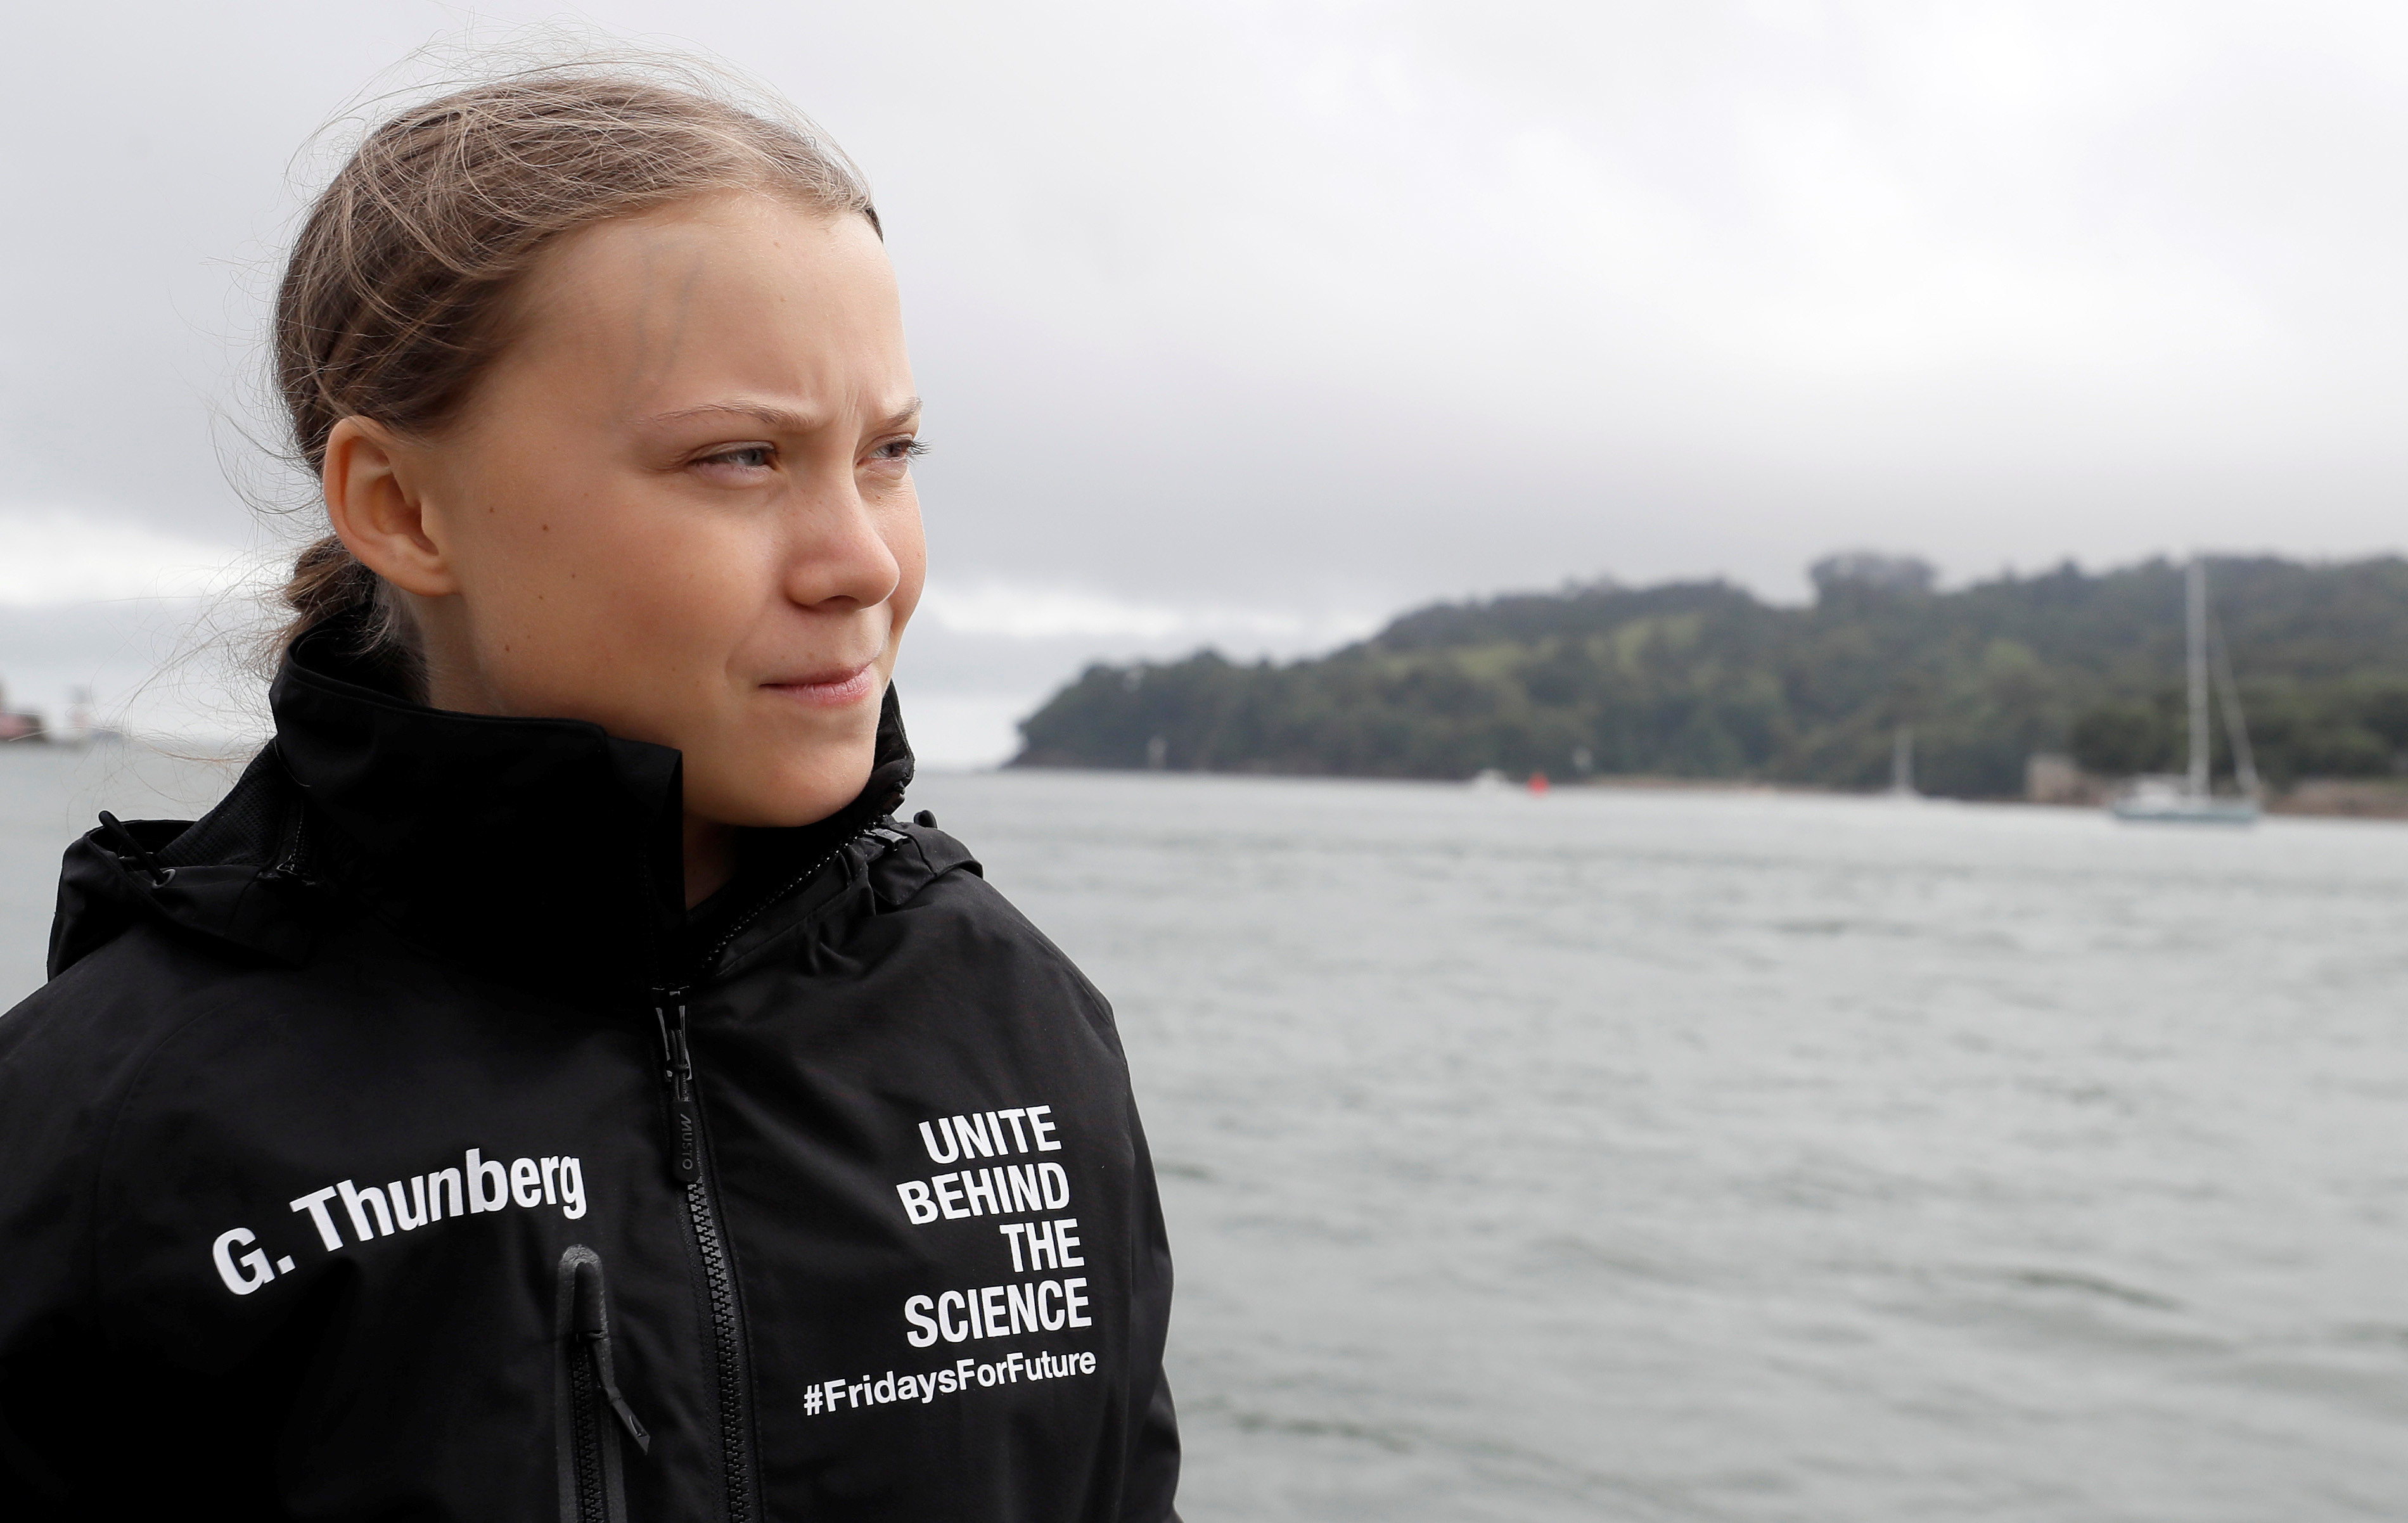 Swedish teenage climate activist Greta Thunberg arrives to board the Malizia II boat in Plymouth, Britain.